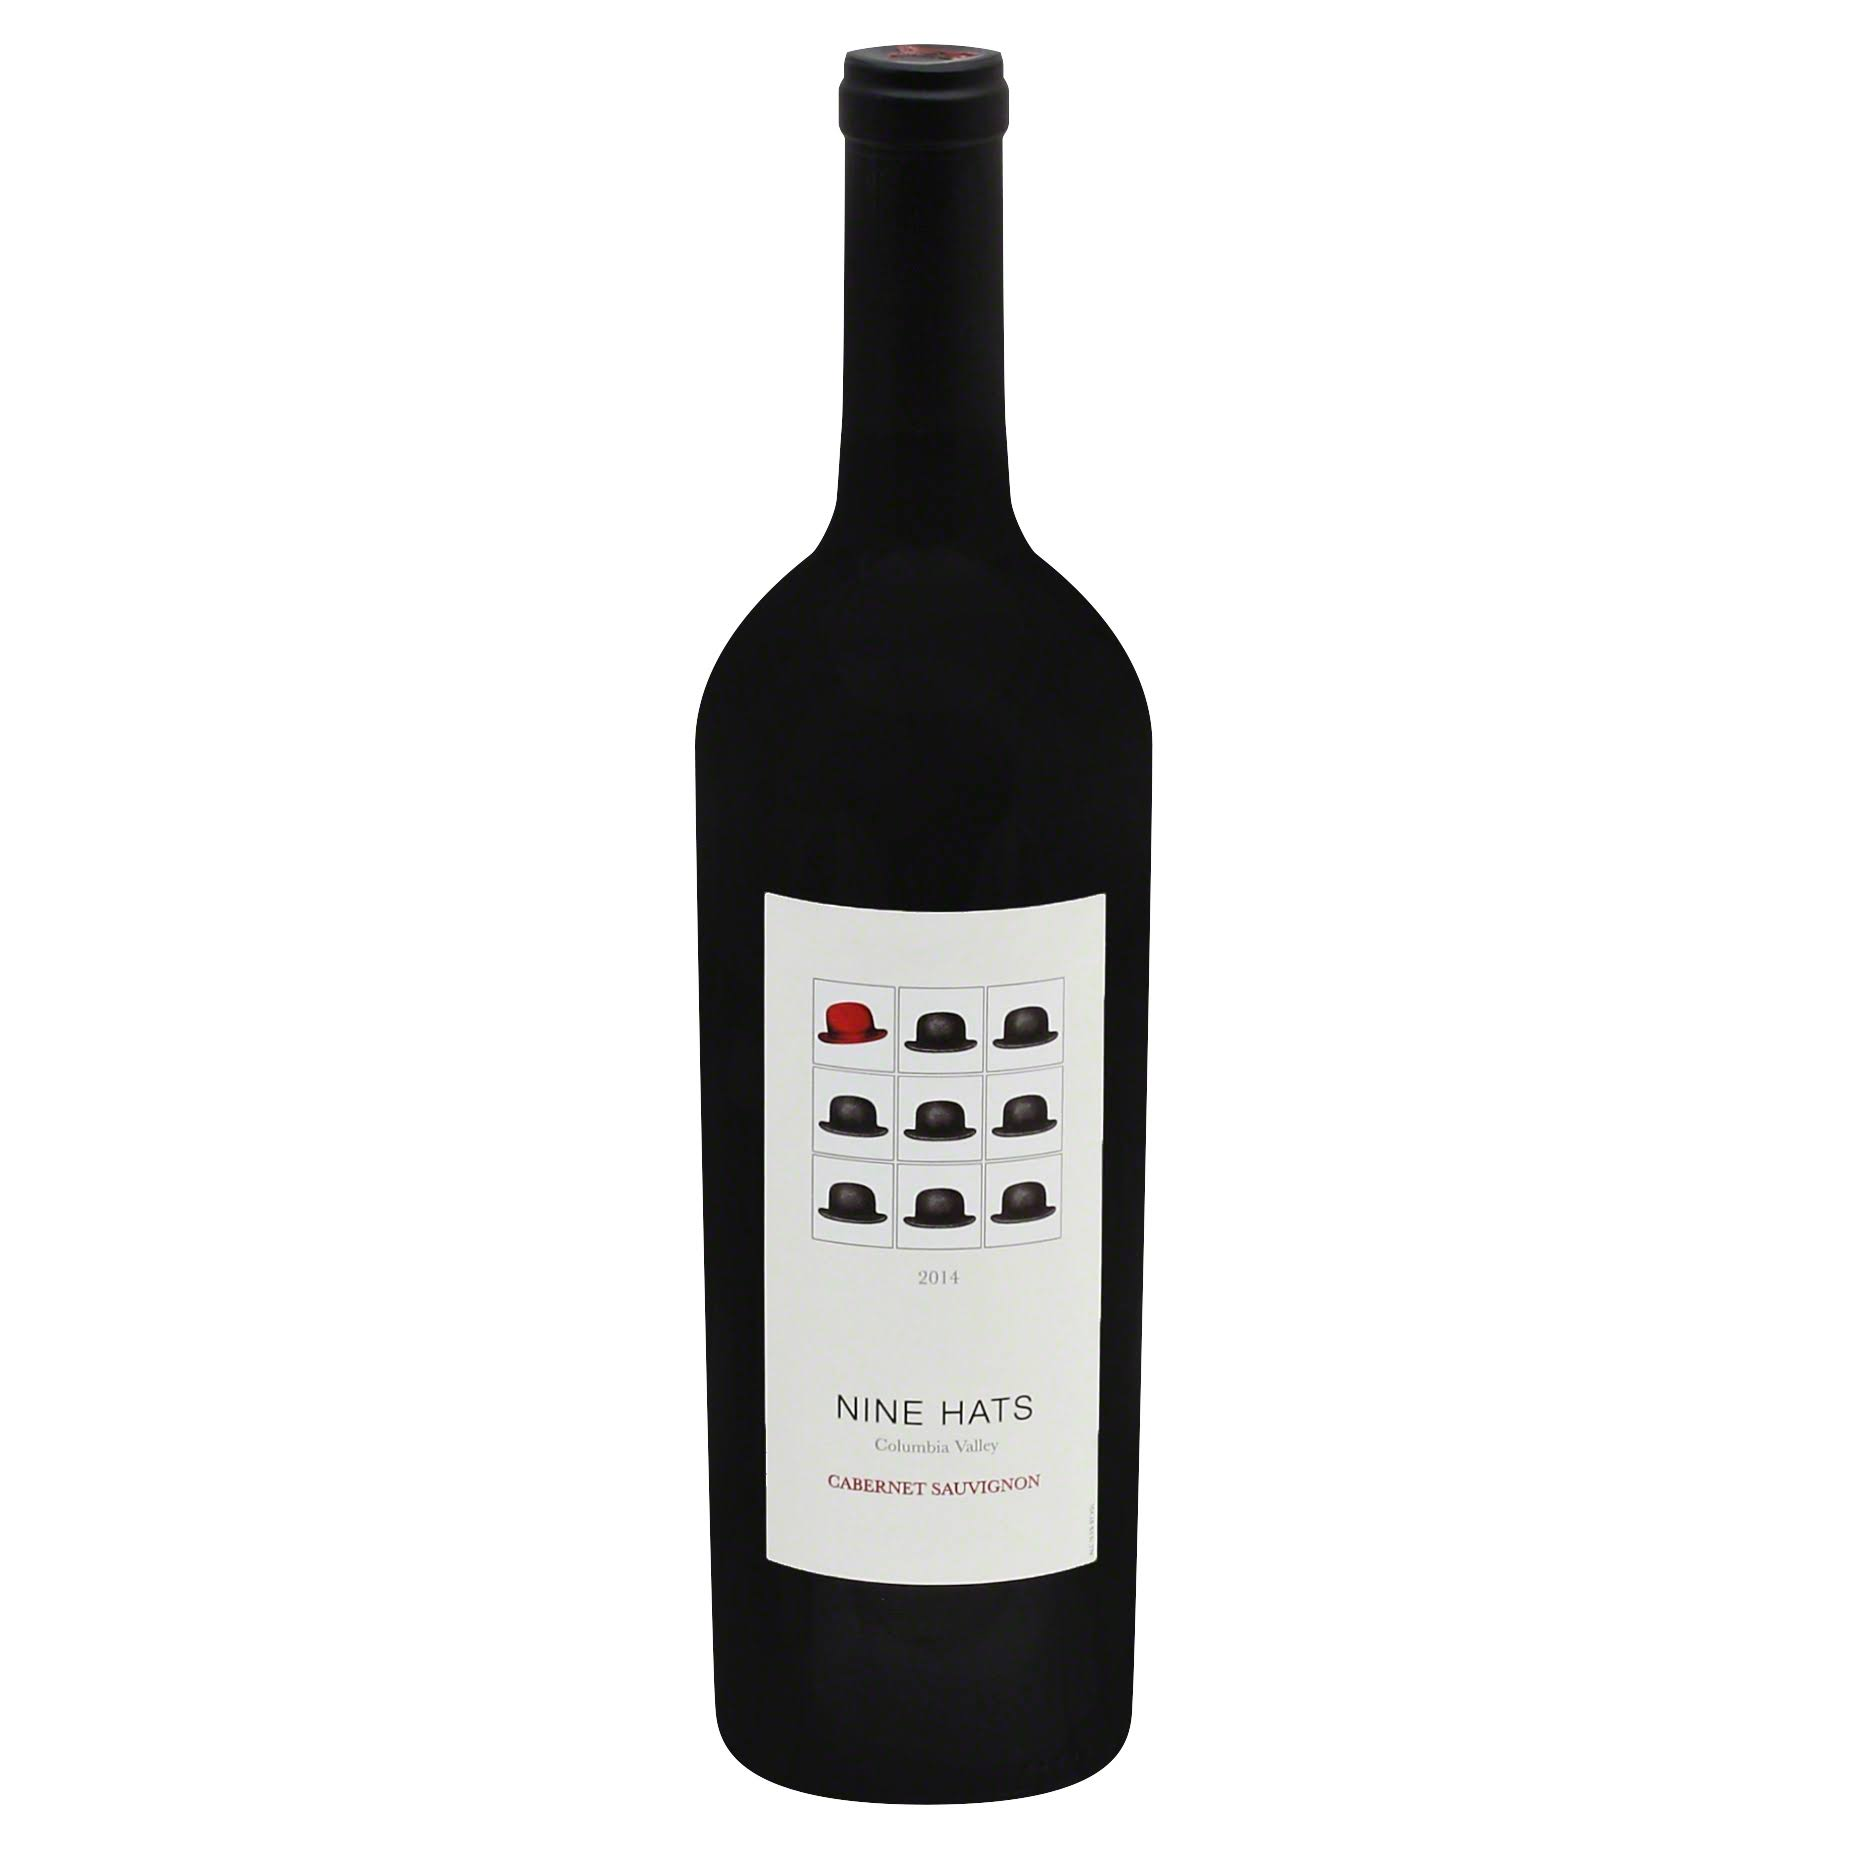 Nine Hats Cabernet Sauvignon, Columbia Valley, 2014 - 750 ml